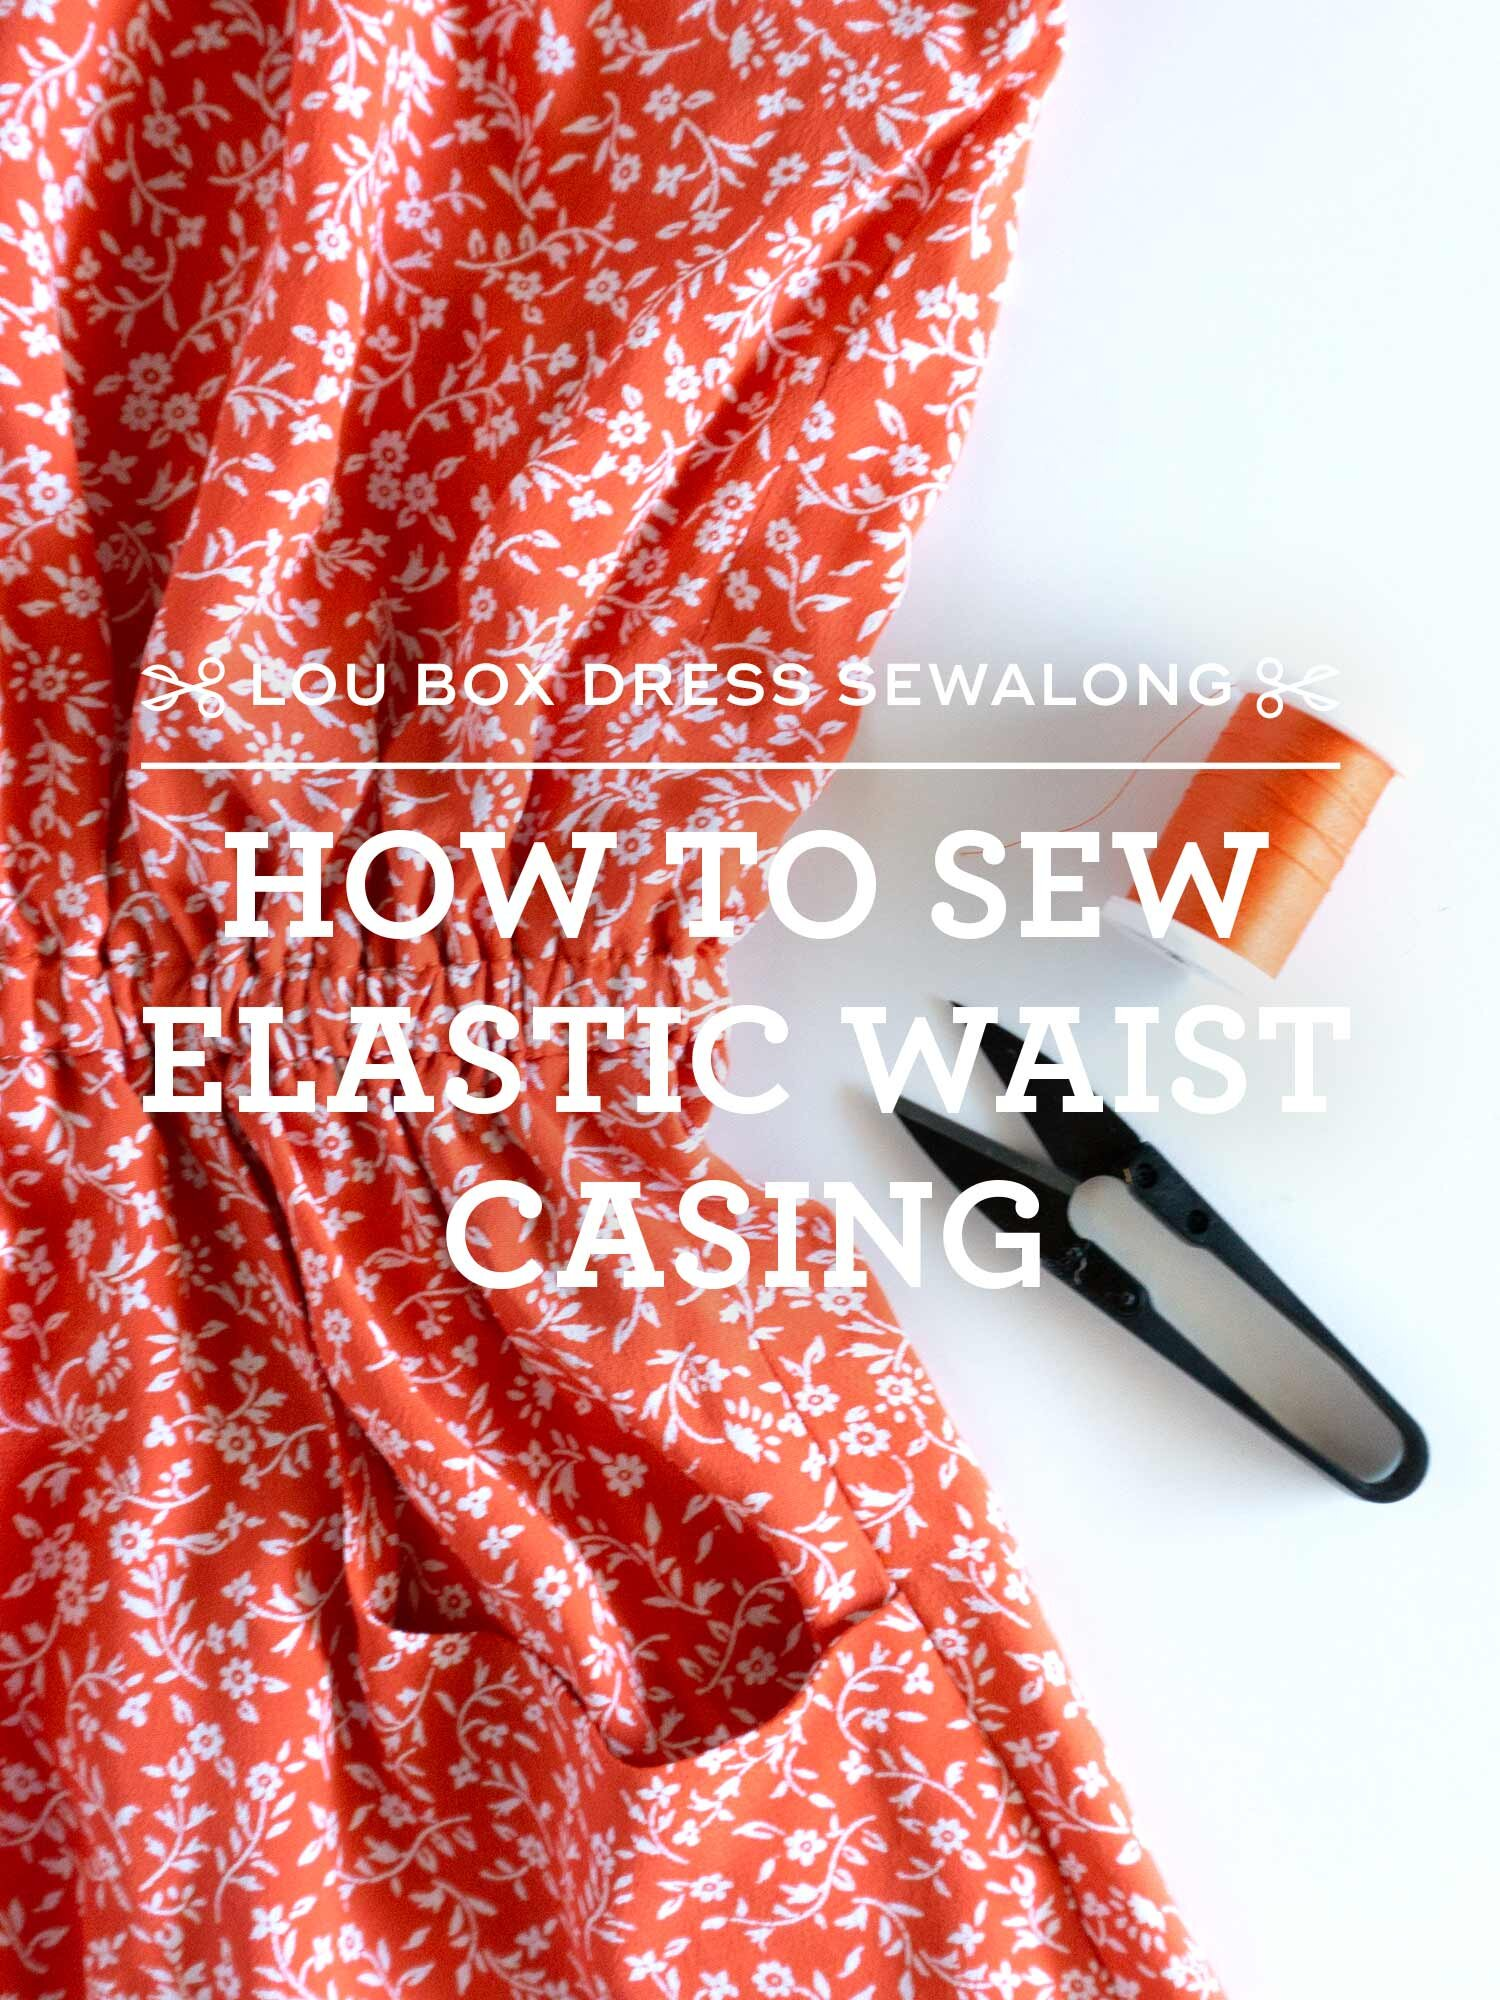 Lou Box Dress Video Sewalong - Learn how to sew the elastic waist casing of the Lou Box Dress 2 by Sew DIY